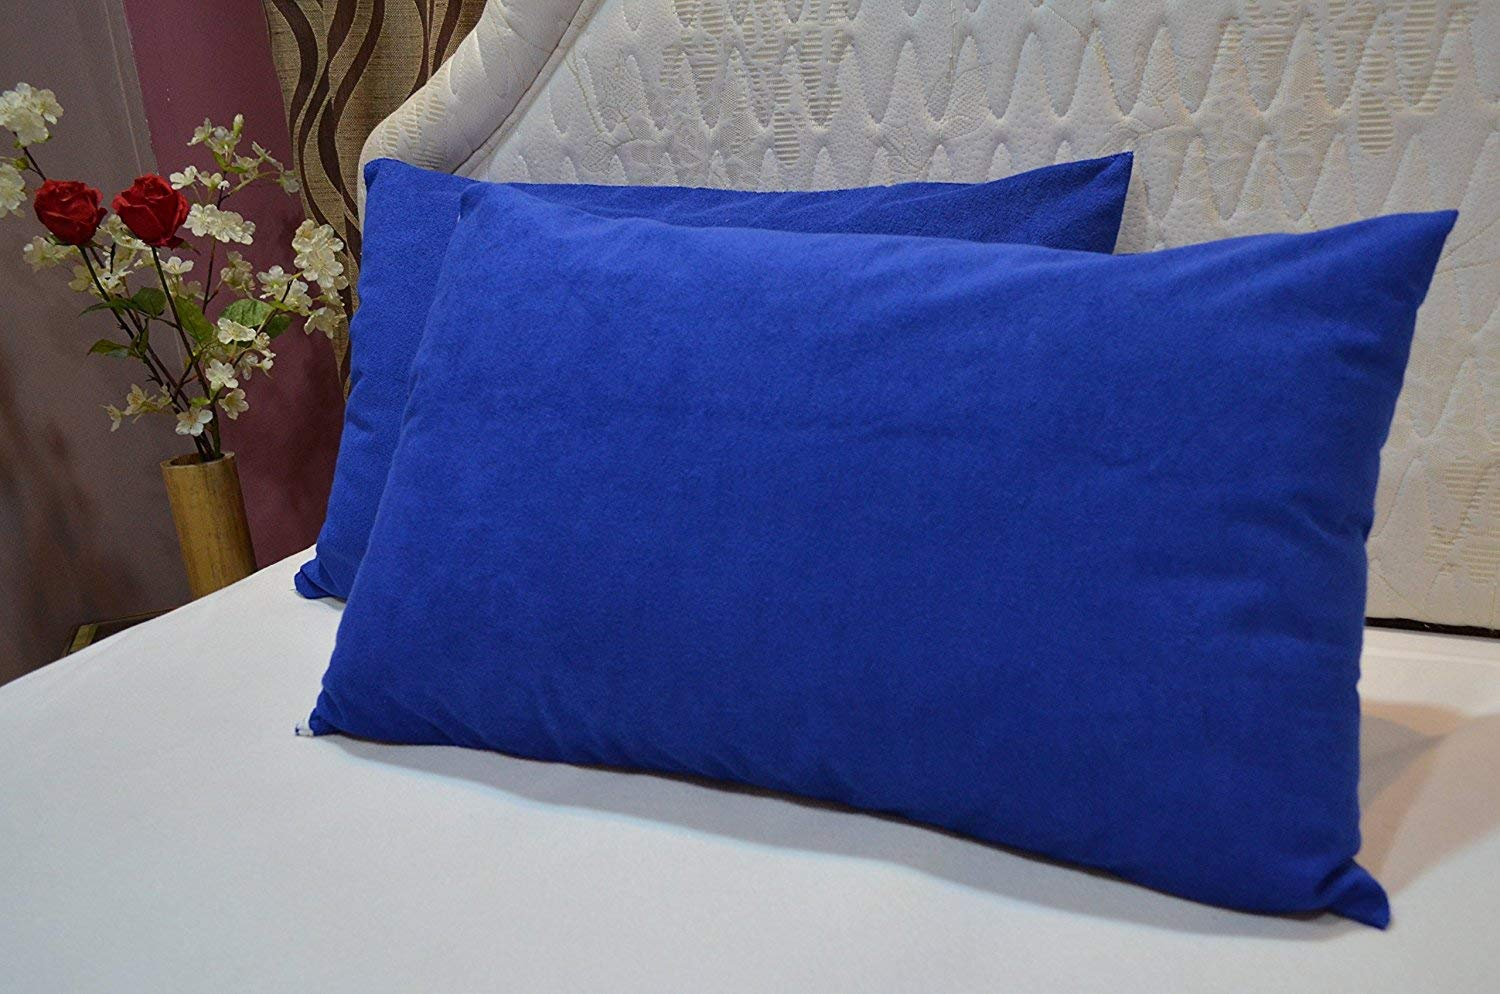 Buy Uppercut 100 Cotton Water Resistant Pillow Protector Set Of 2 Cobalt Blue 18x28 Inches Online At Low Prices In India Amazon In